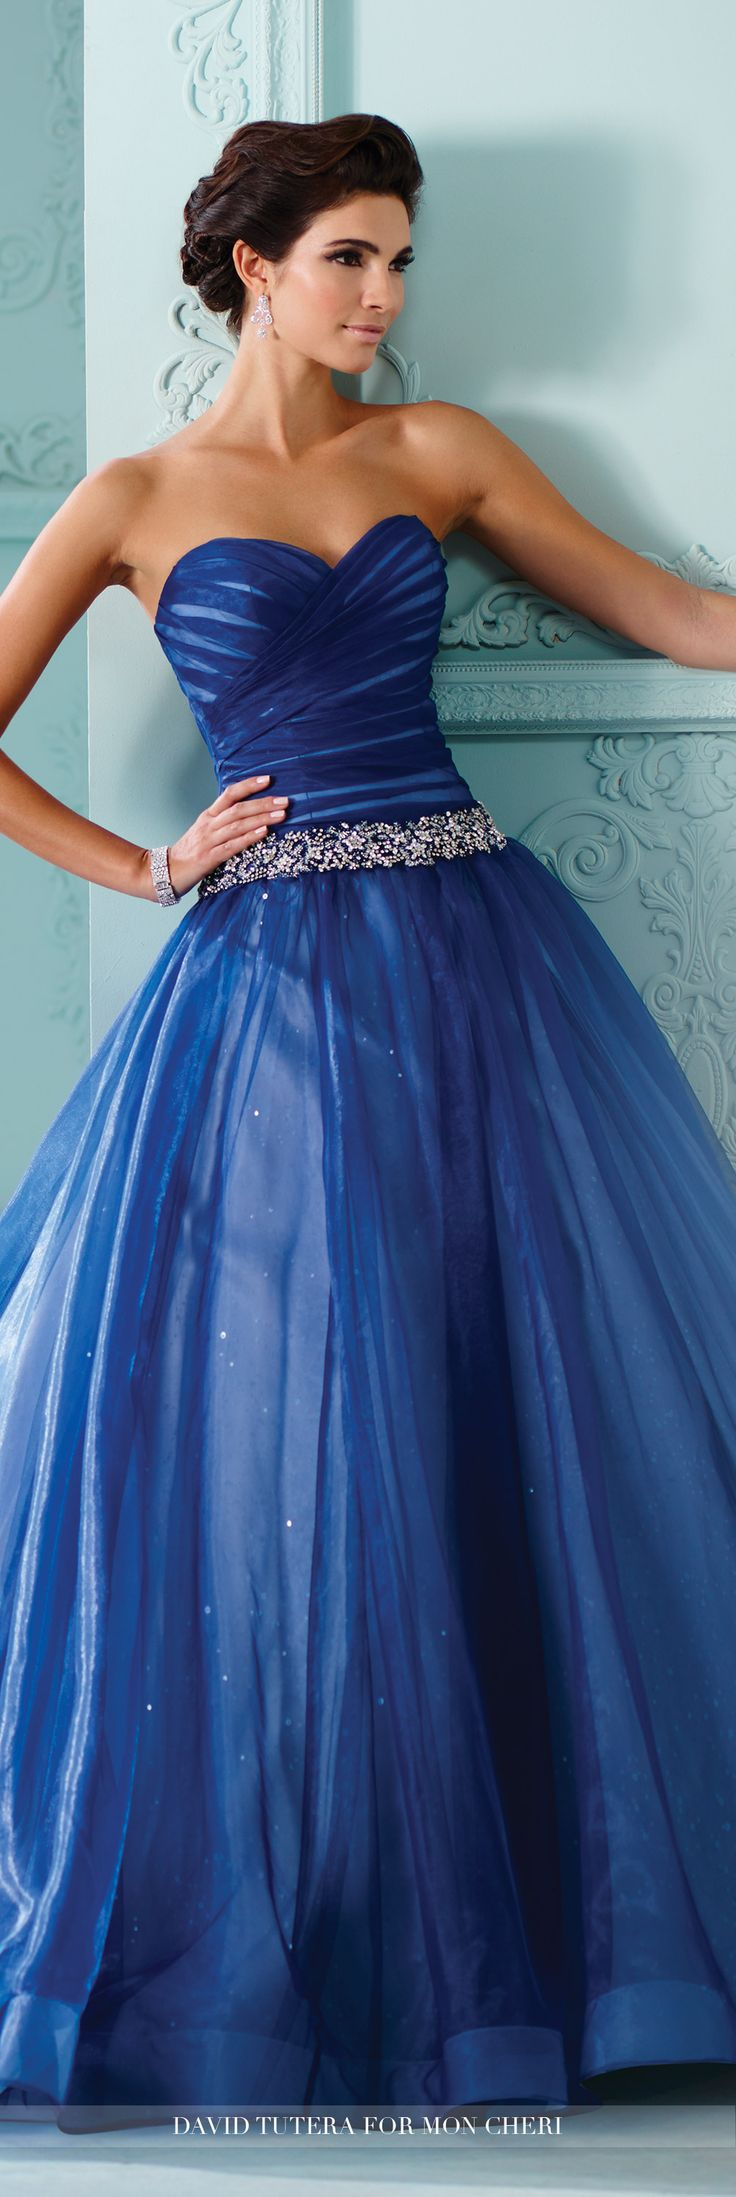 David Tutera for Mon Cheri Fall 2016 Collection - Style No. 216257 Indigo - sapphire blue strapless orgnaza over sequined tulle and satin ball gown wedding dress